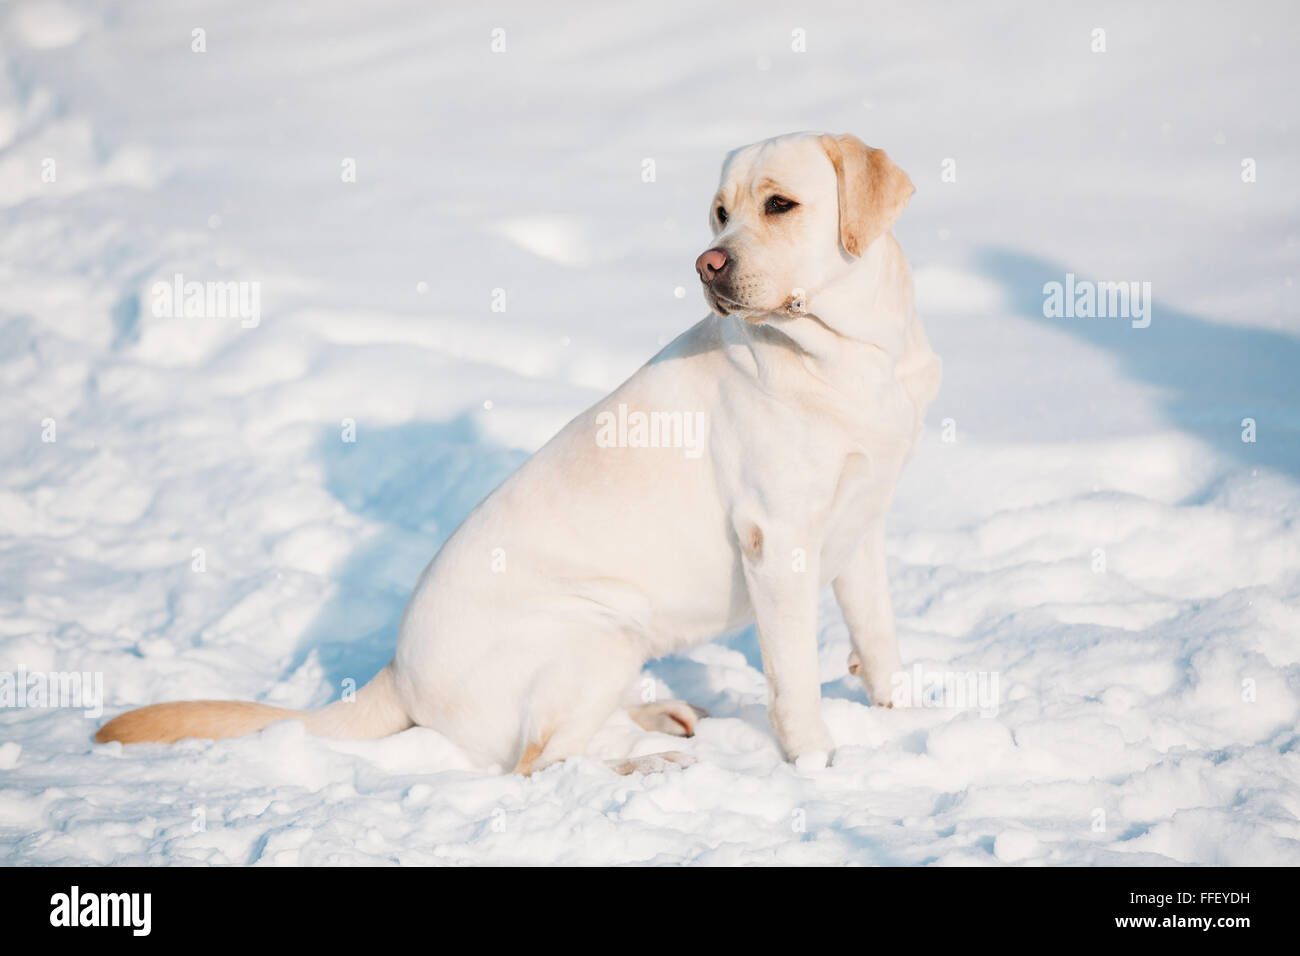 Young labrador dog sit in snow, winter season. Sunny day - Stock Image